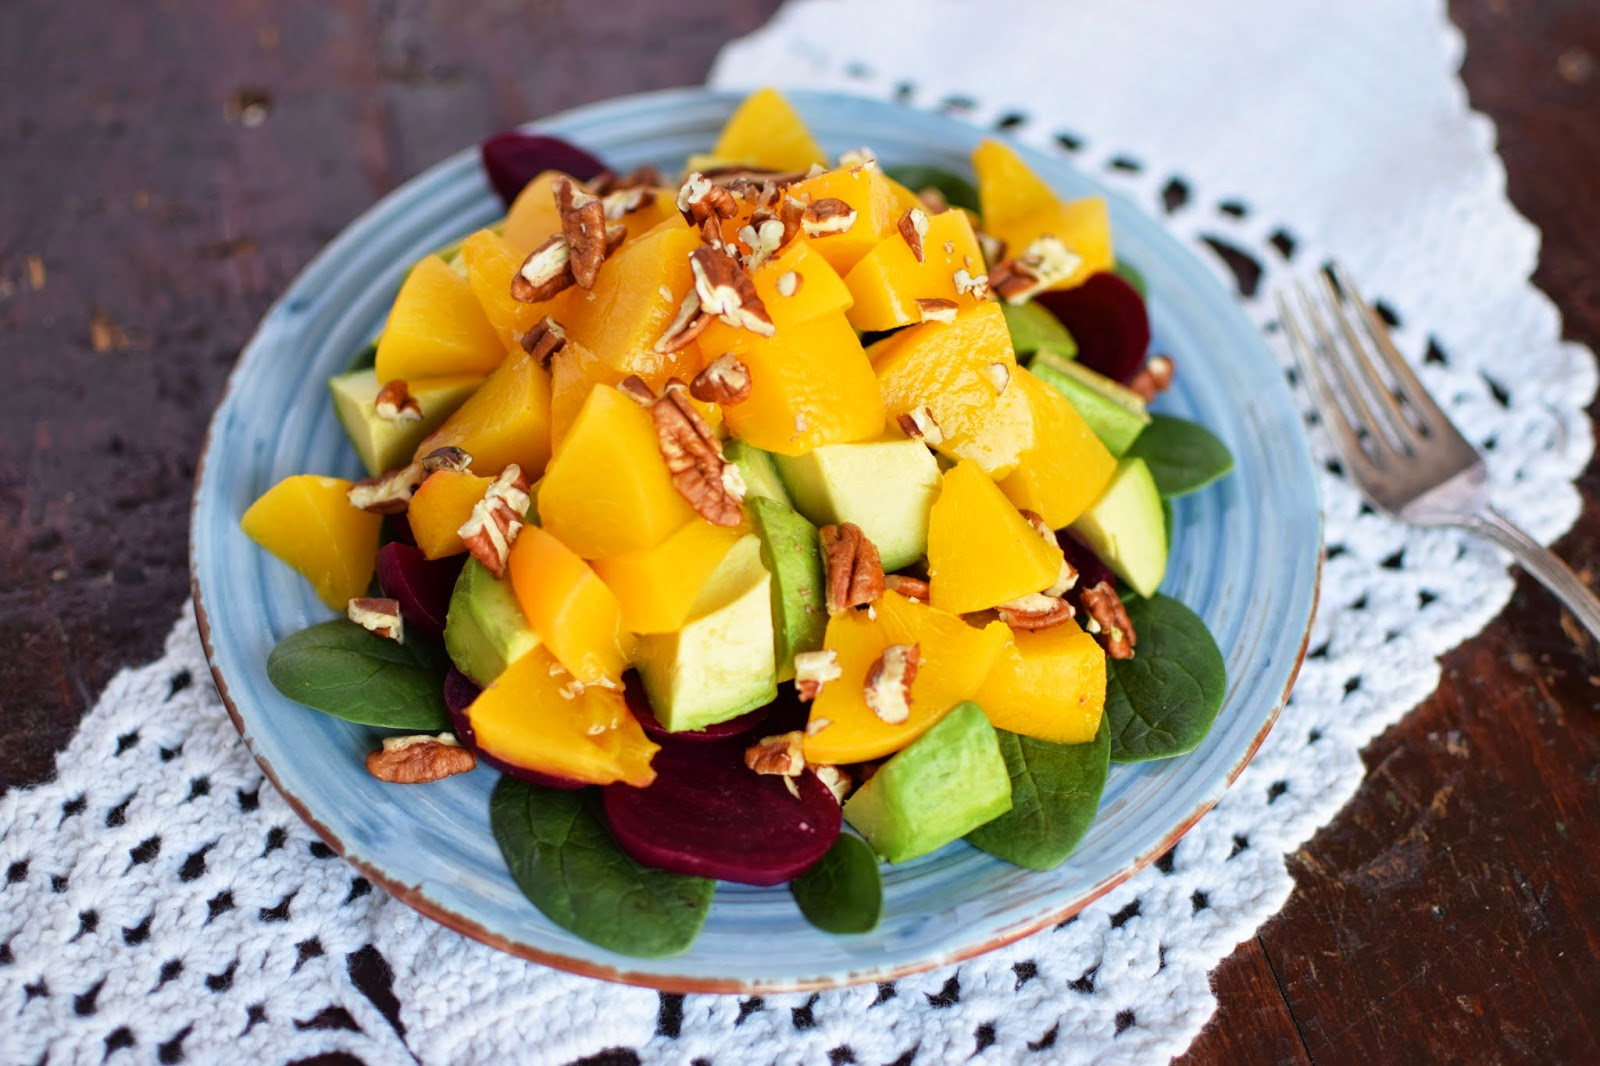 Sunny Peach Salad with Avocados Beets and Pecans